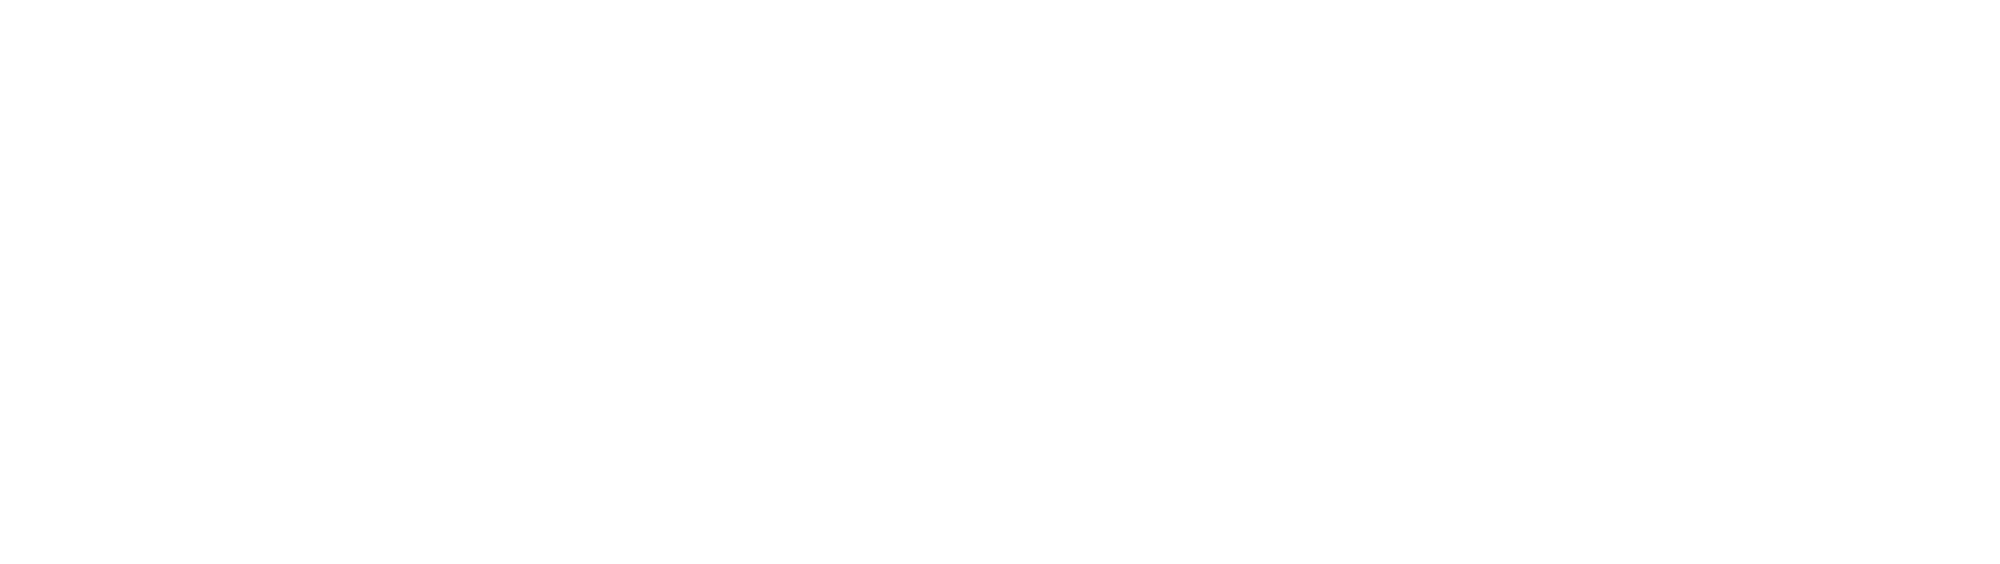 Neva Group Services